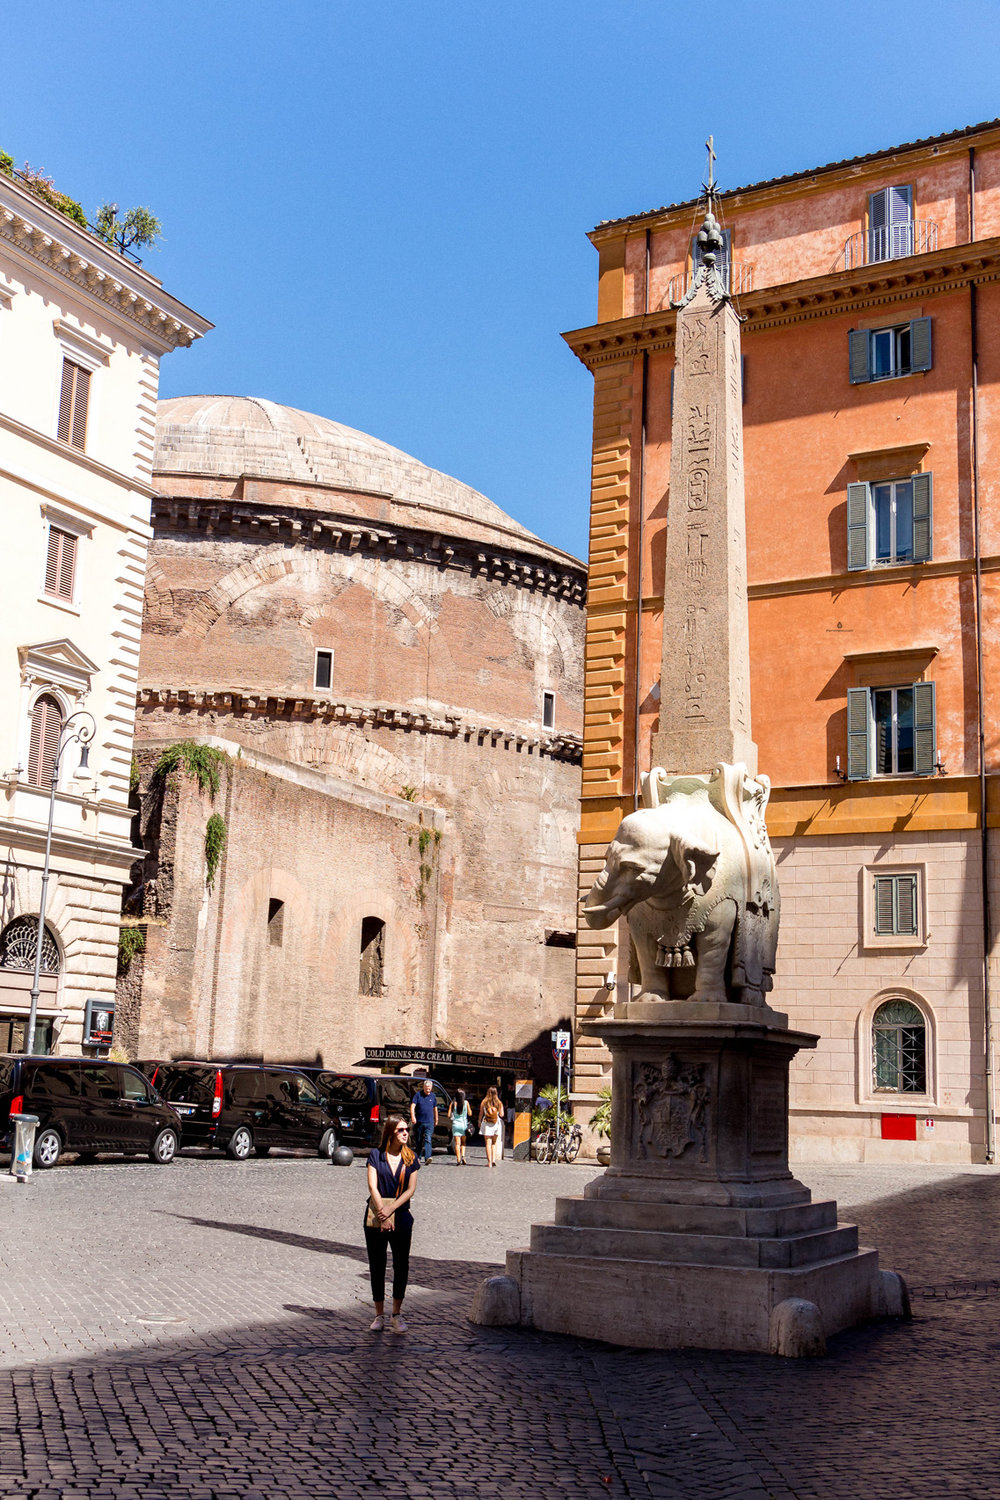 Bernini's Elephant sculpture, Rome